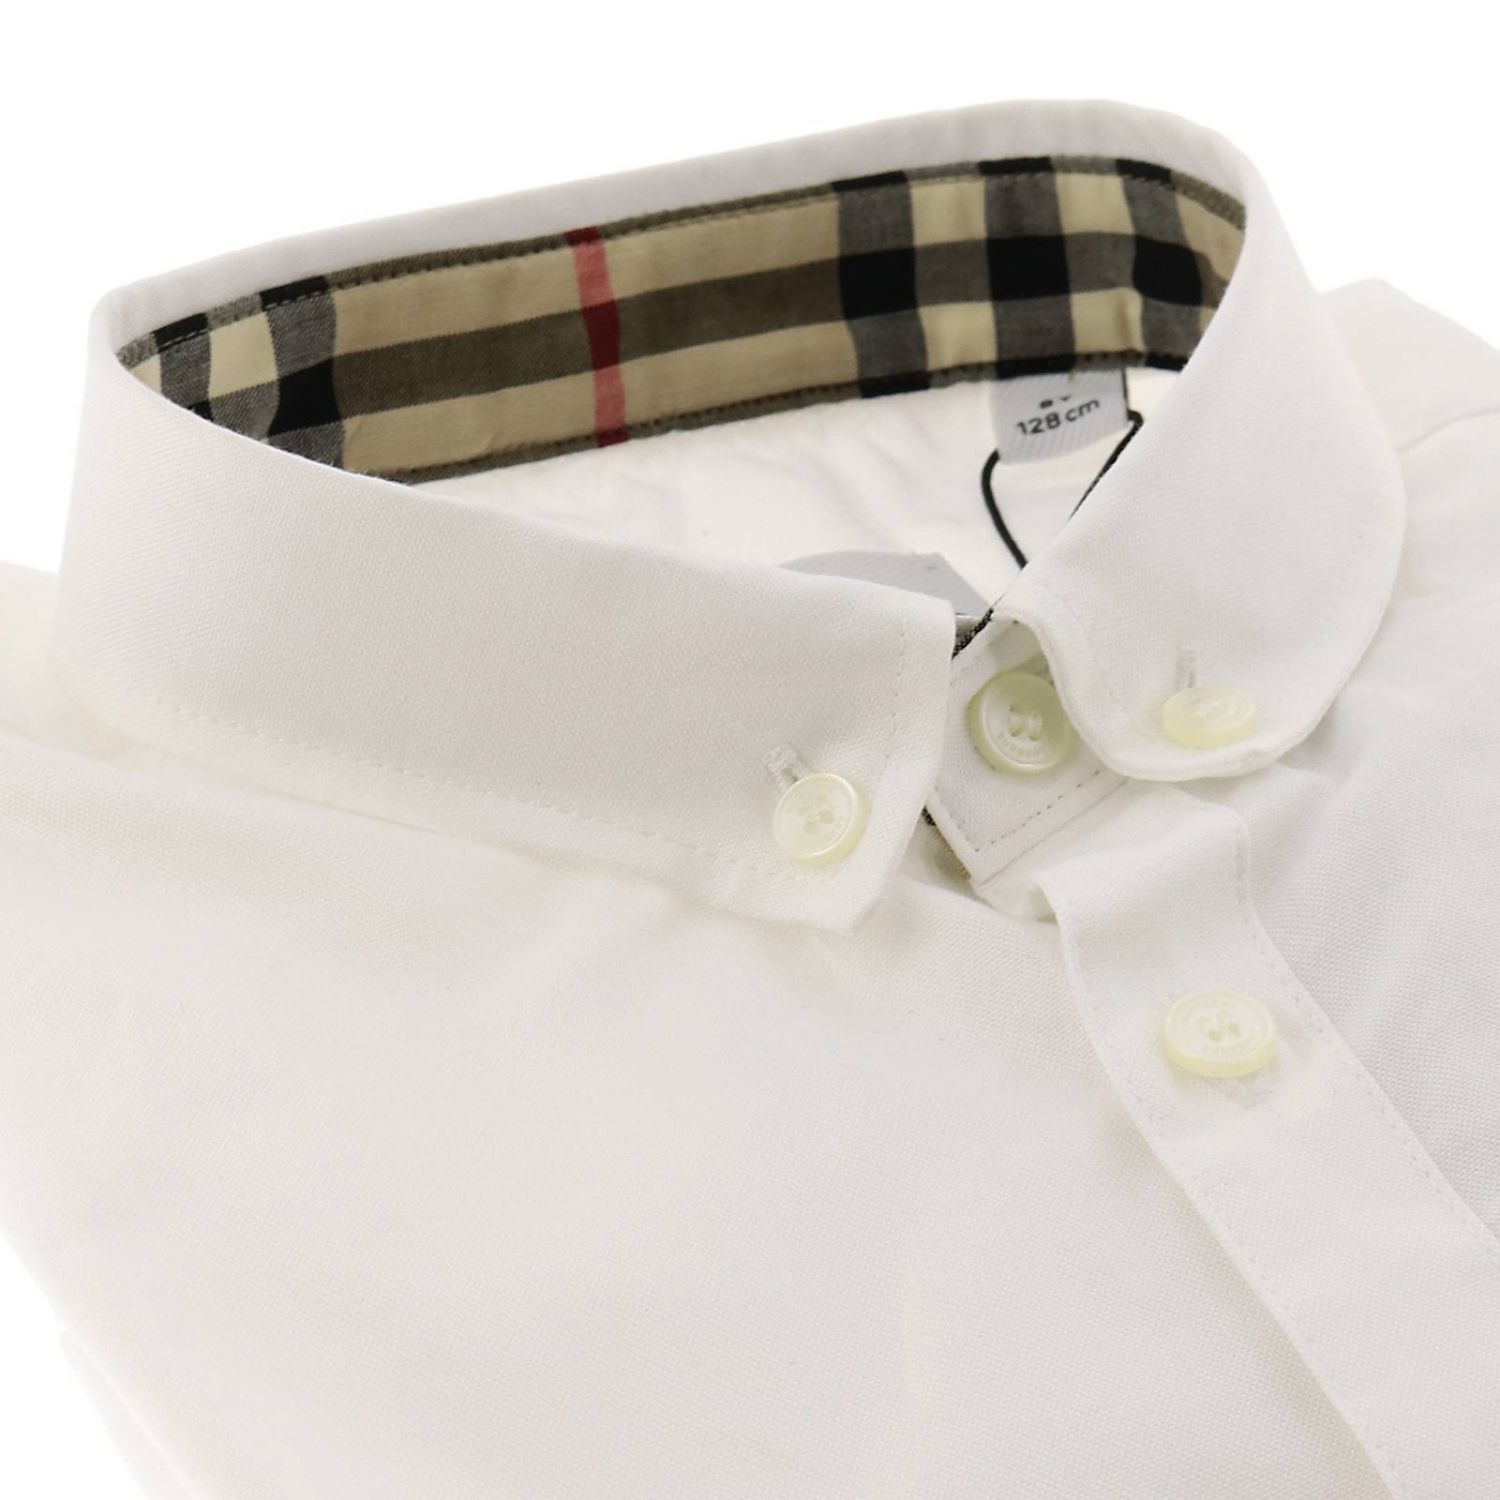 Camicia con collo button down e interni check Burberry bianco 2